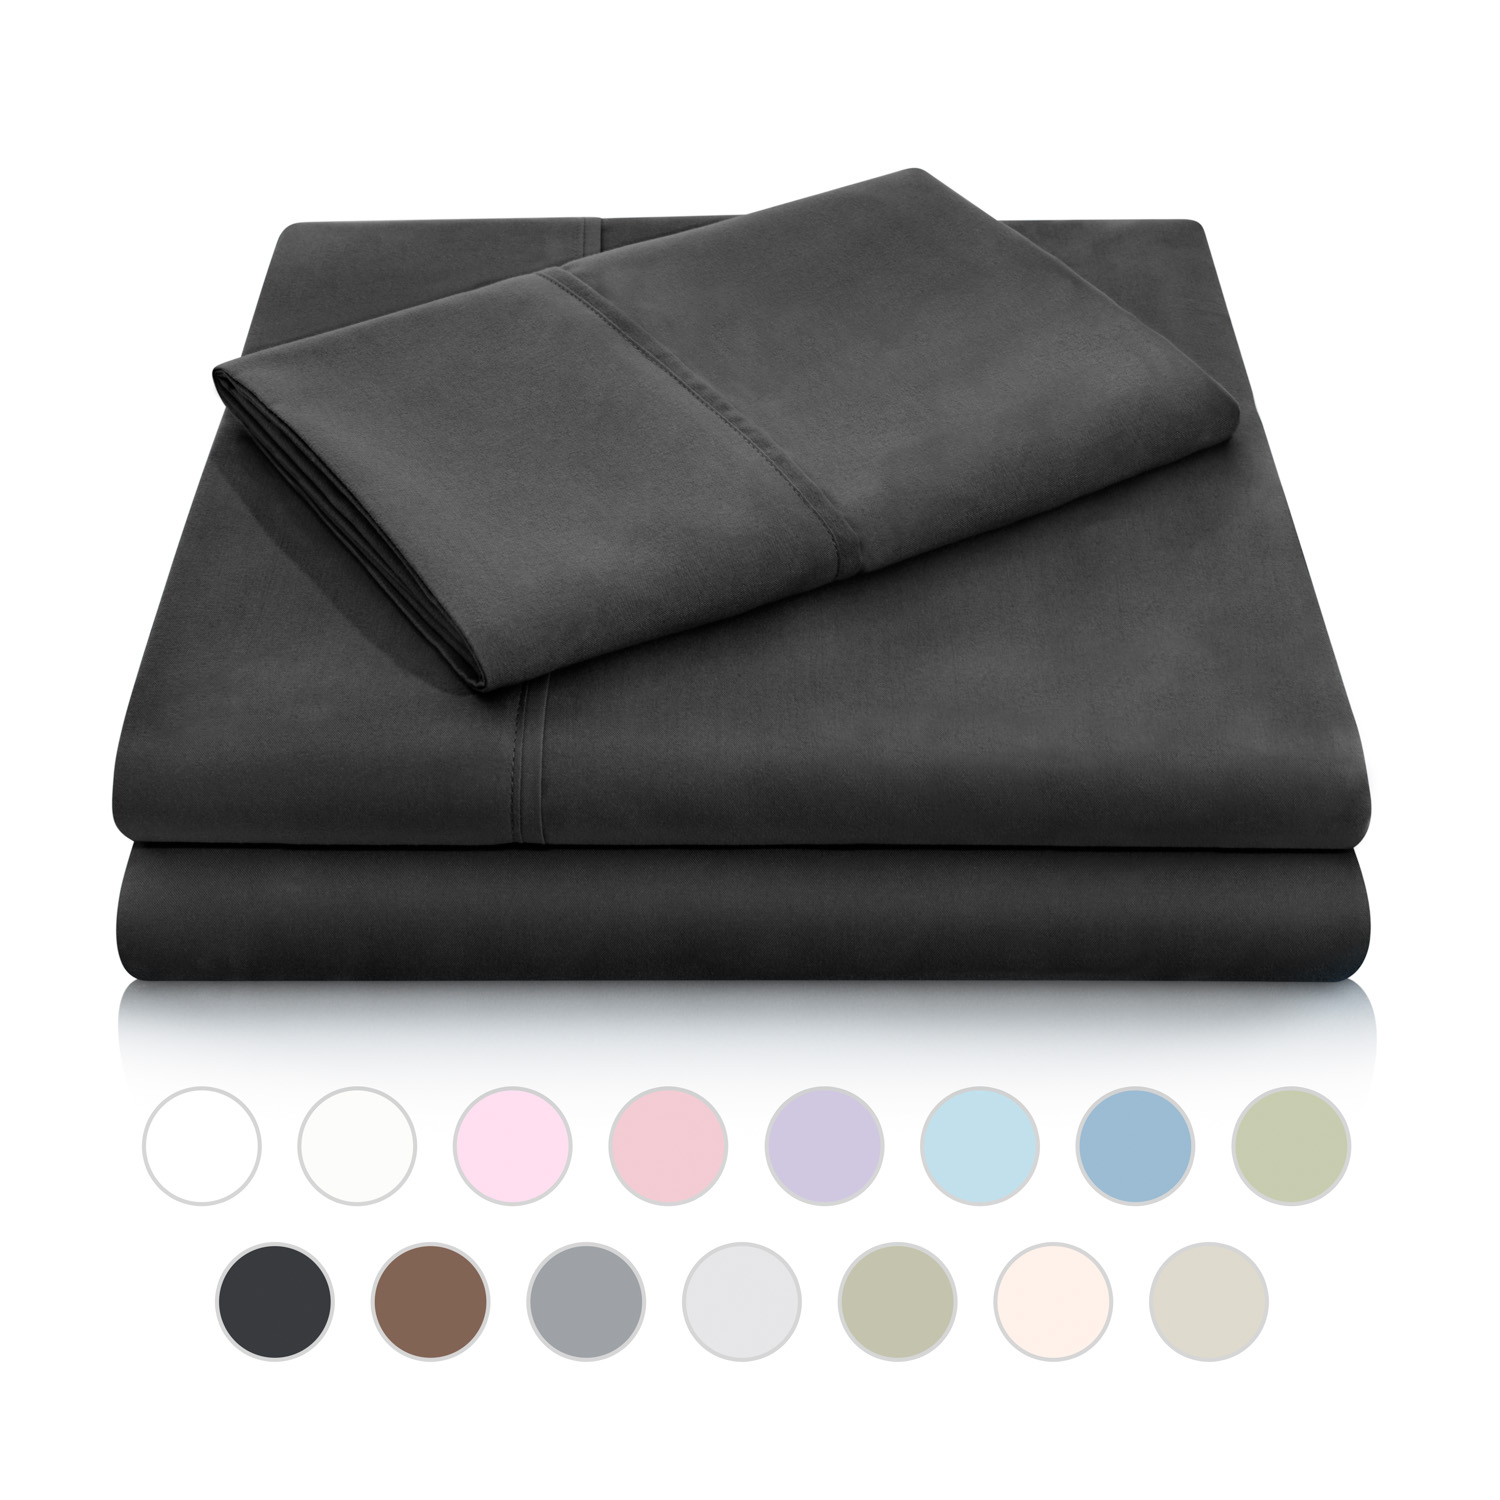 Woven Double Brushed Microfiber Sheet Set